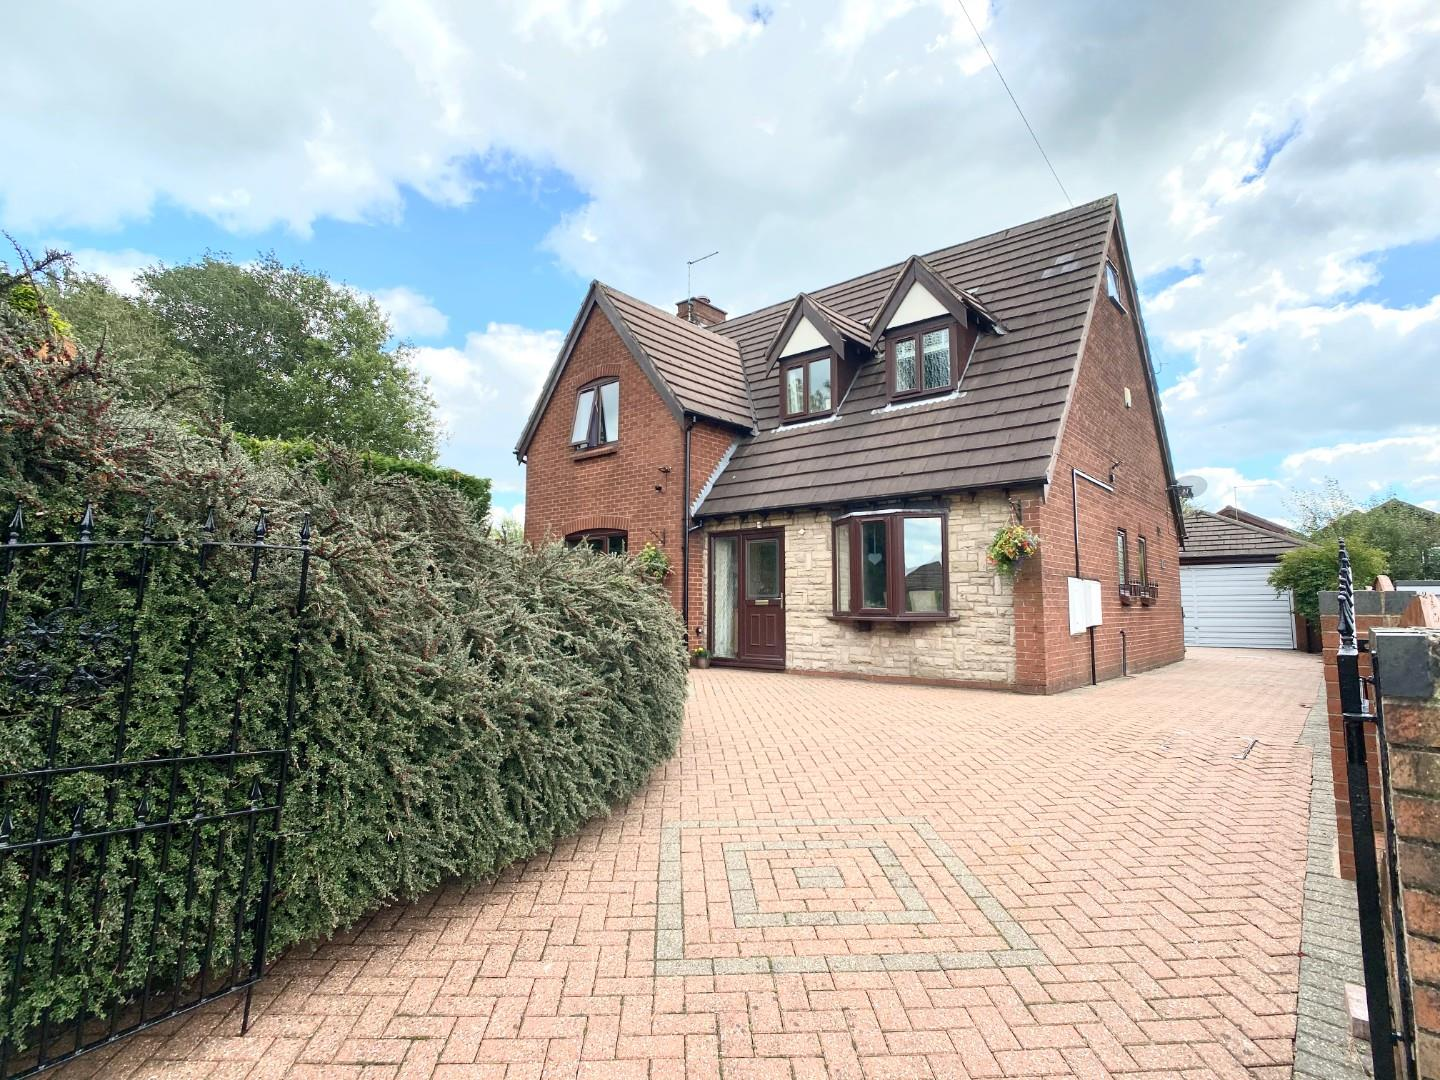 5 bed detached house for sale in Hillside Road, Stoke-On-Trent  - Property Image 1